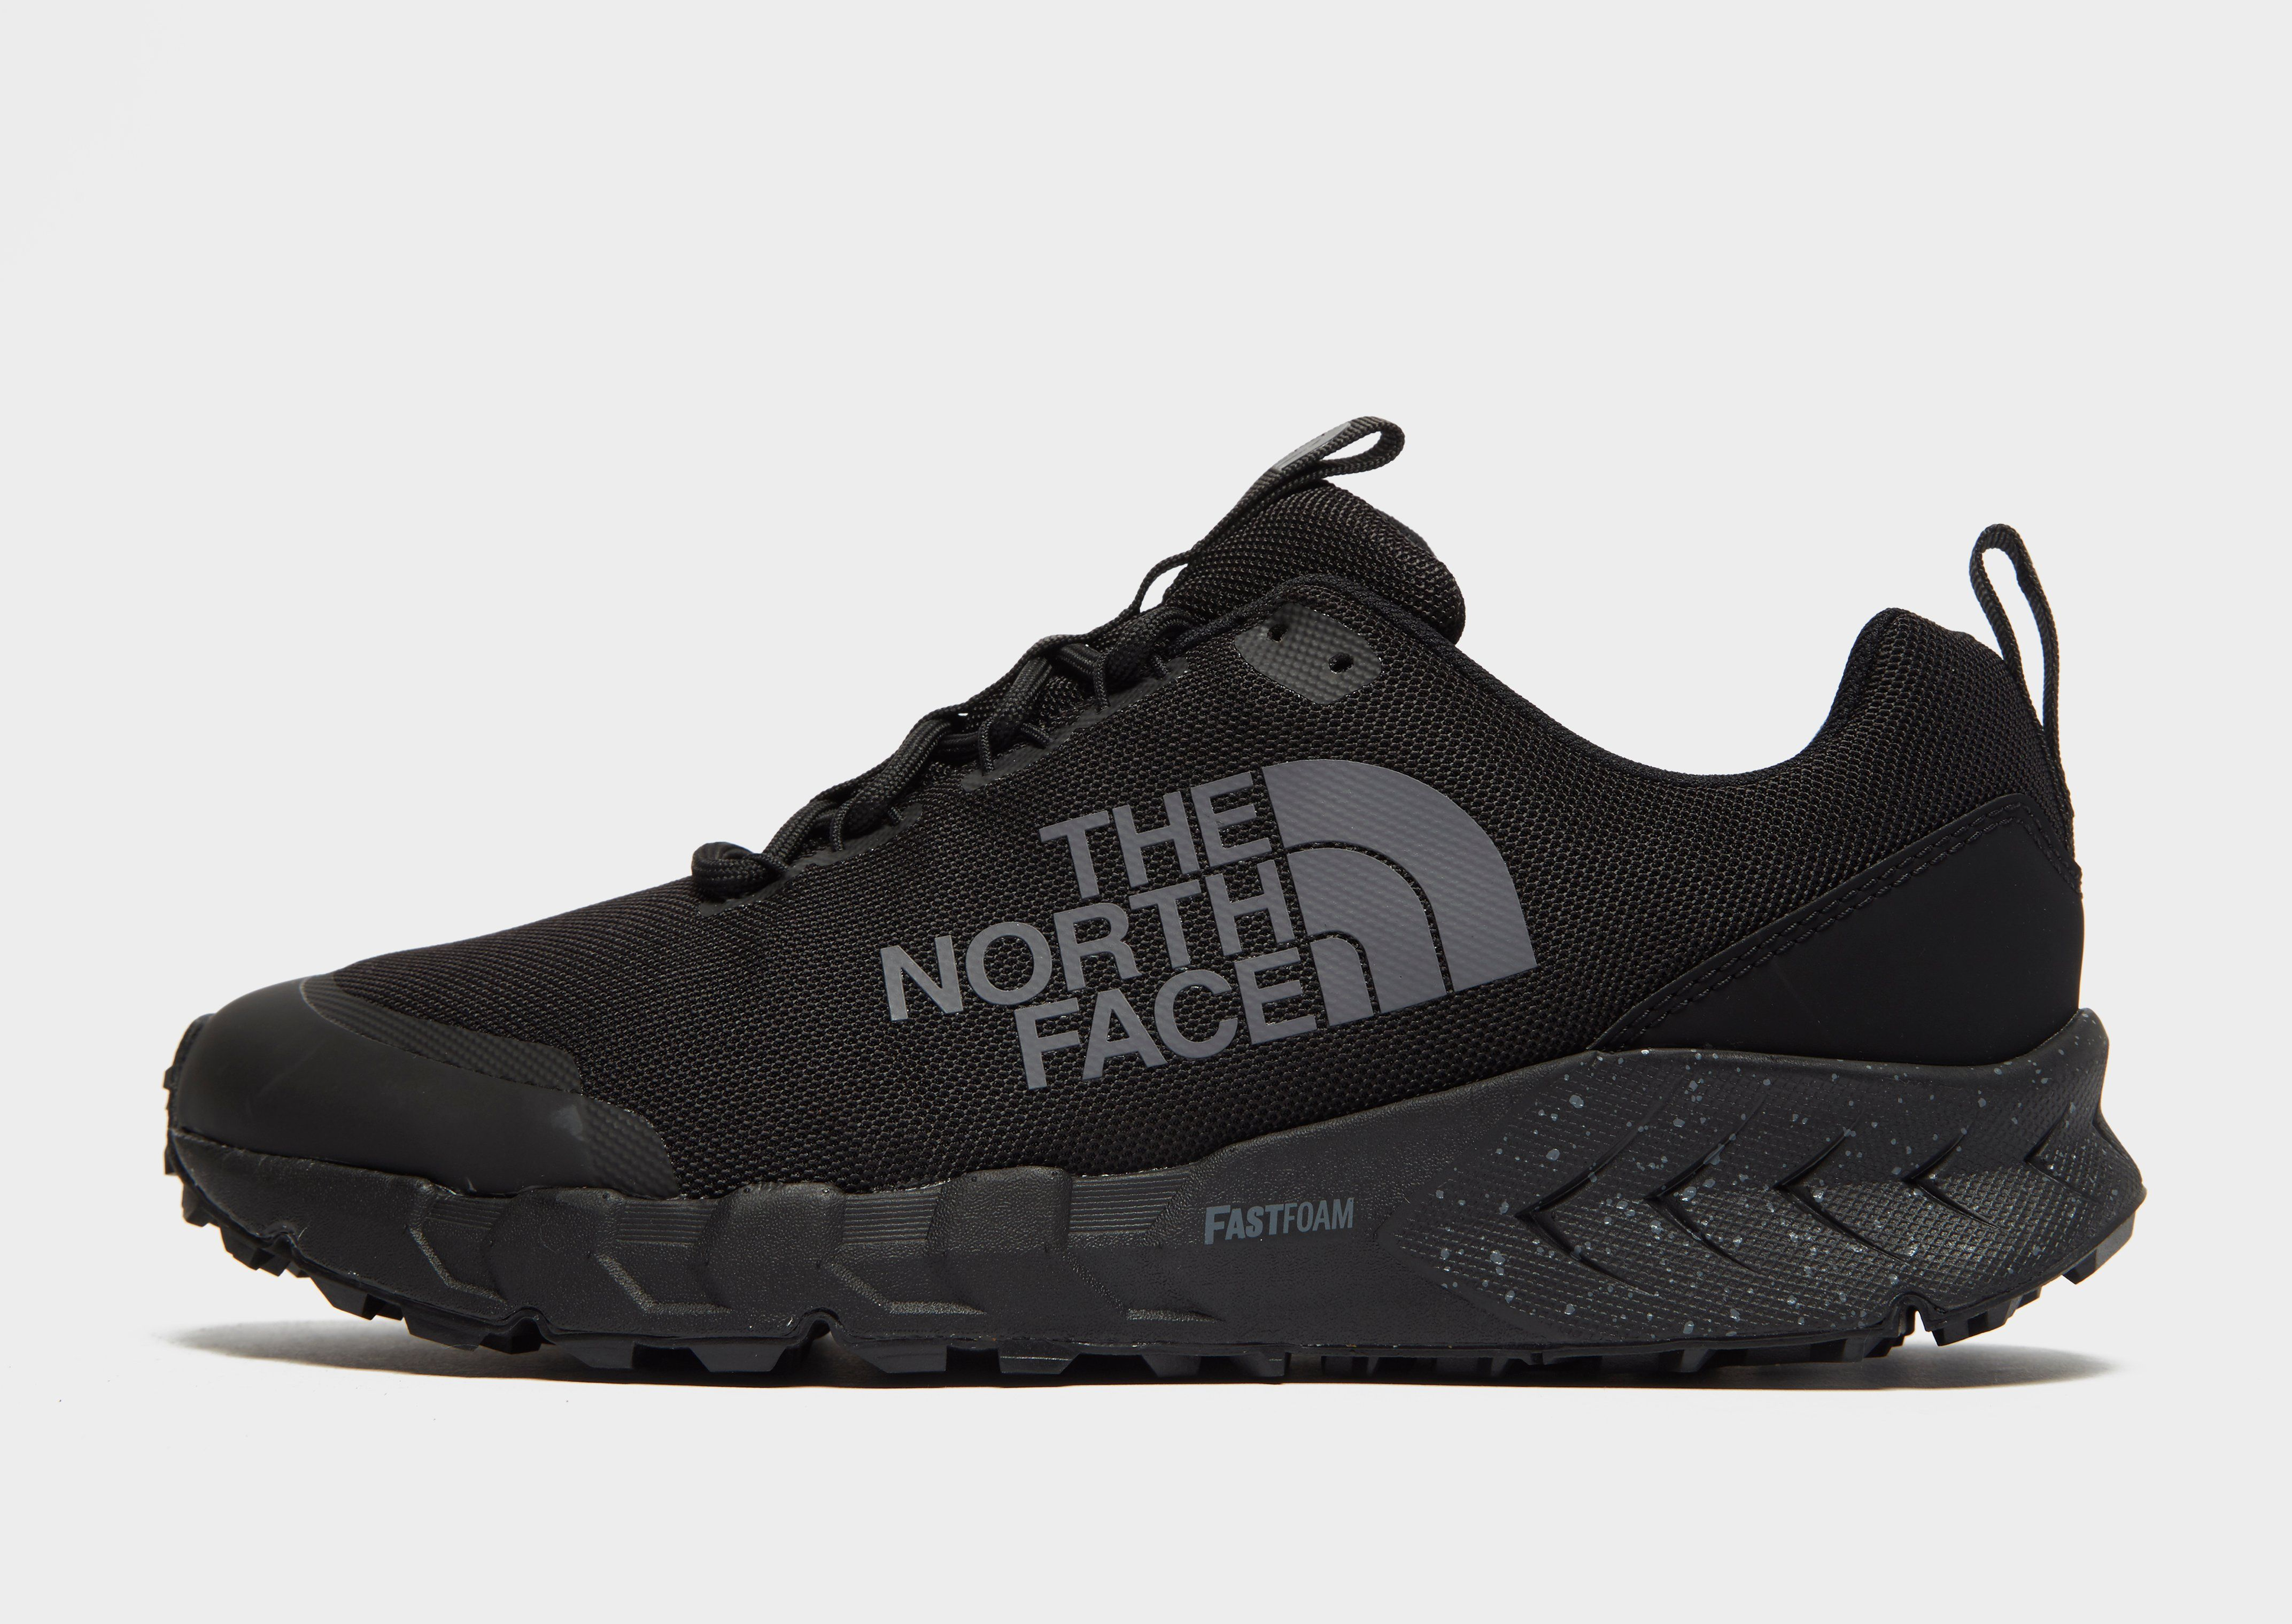 new styles 1cb5a 5ba37 The North Face Spreva